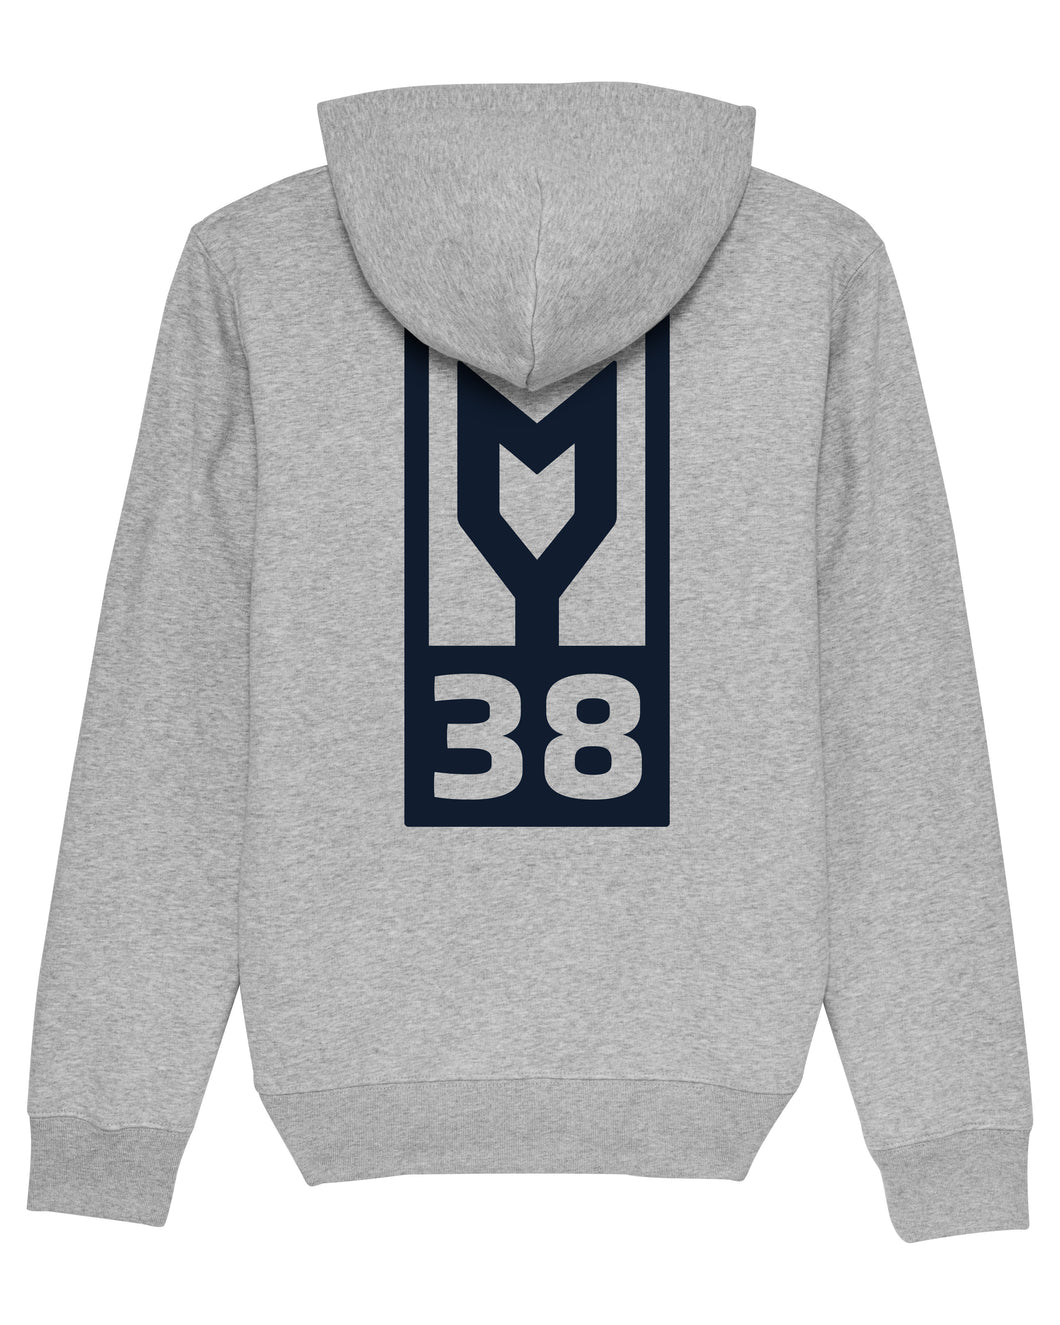 Hoodie MY38 Erwachsene heather grey